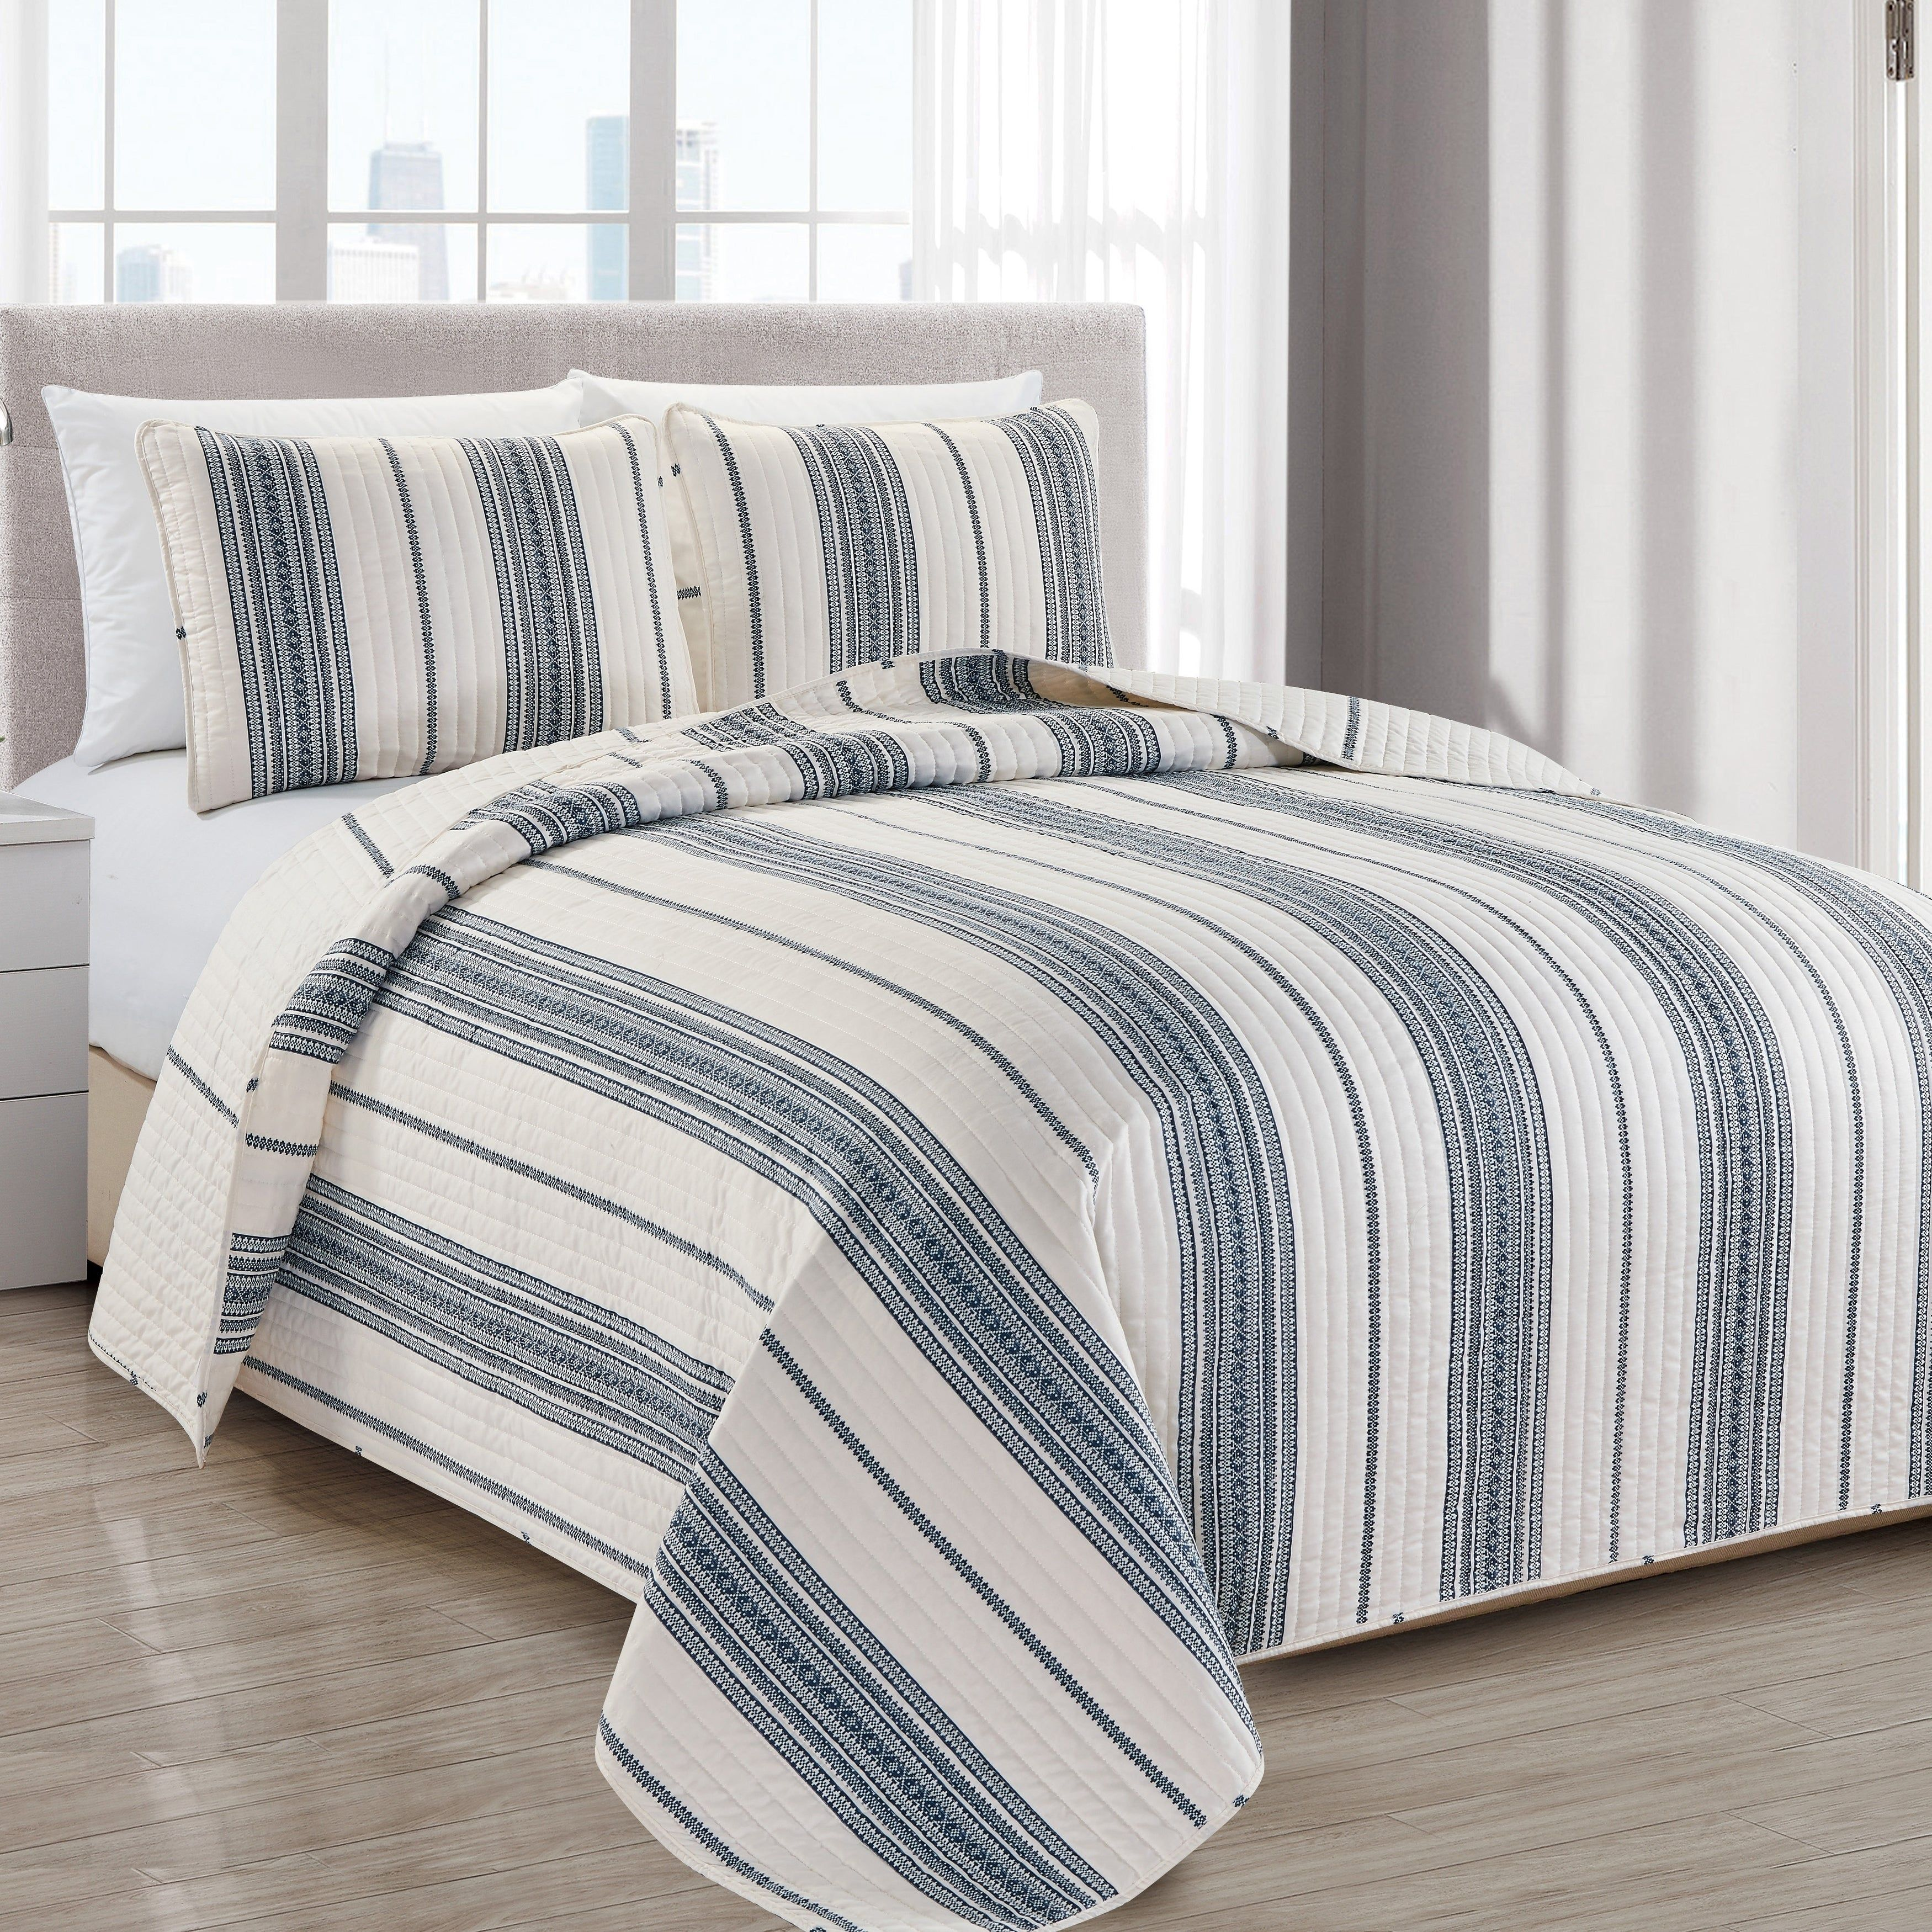 Online Shopping Bedding Furniture Electronics Jewelry Clothing More Quilt Sets Bed Spreads Striped Quilt